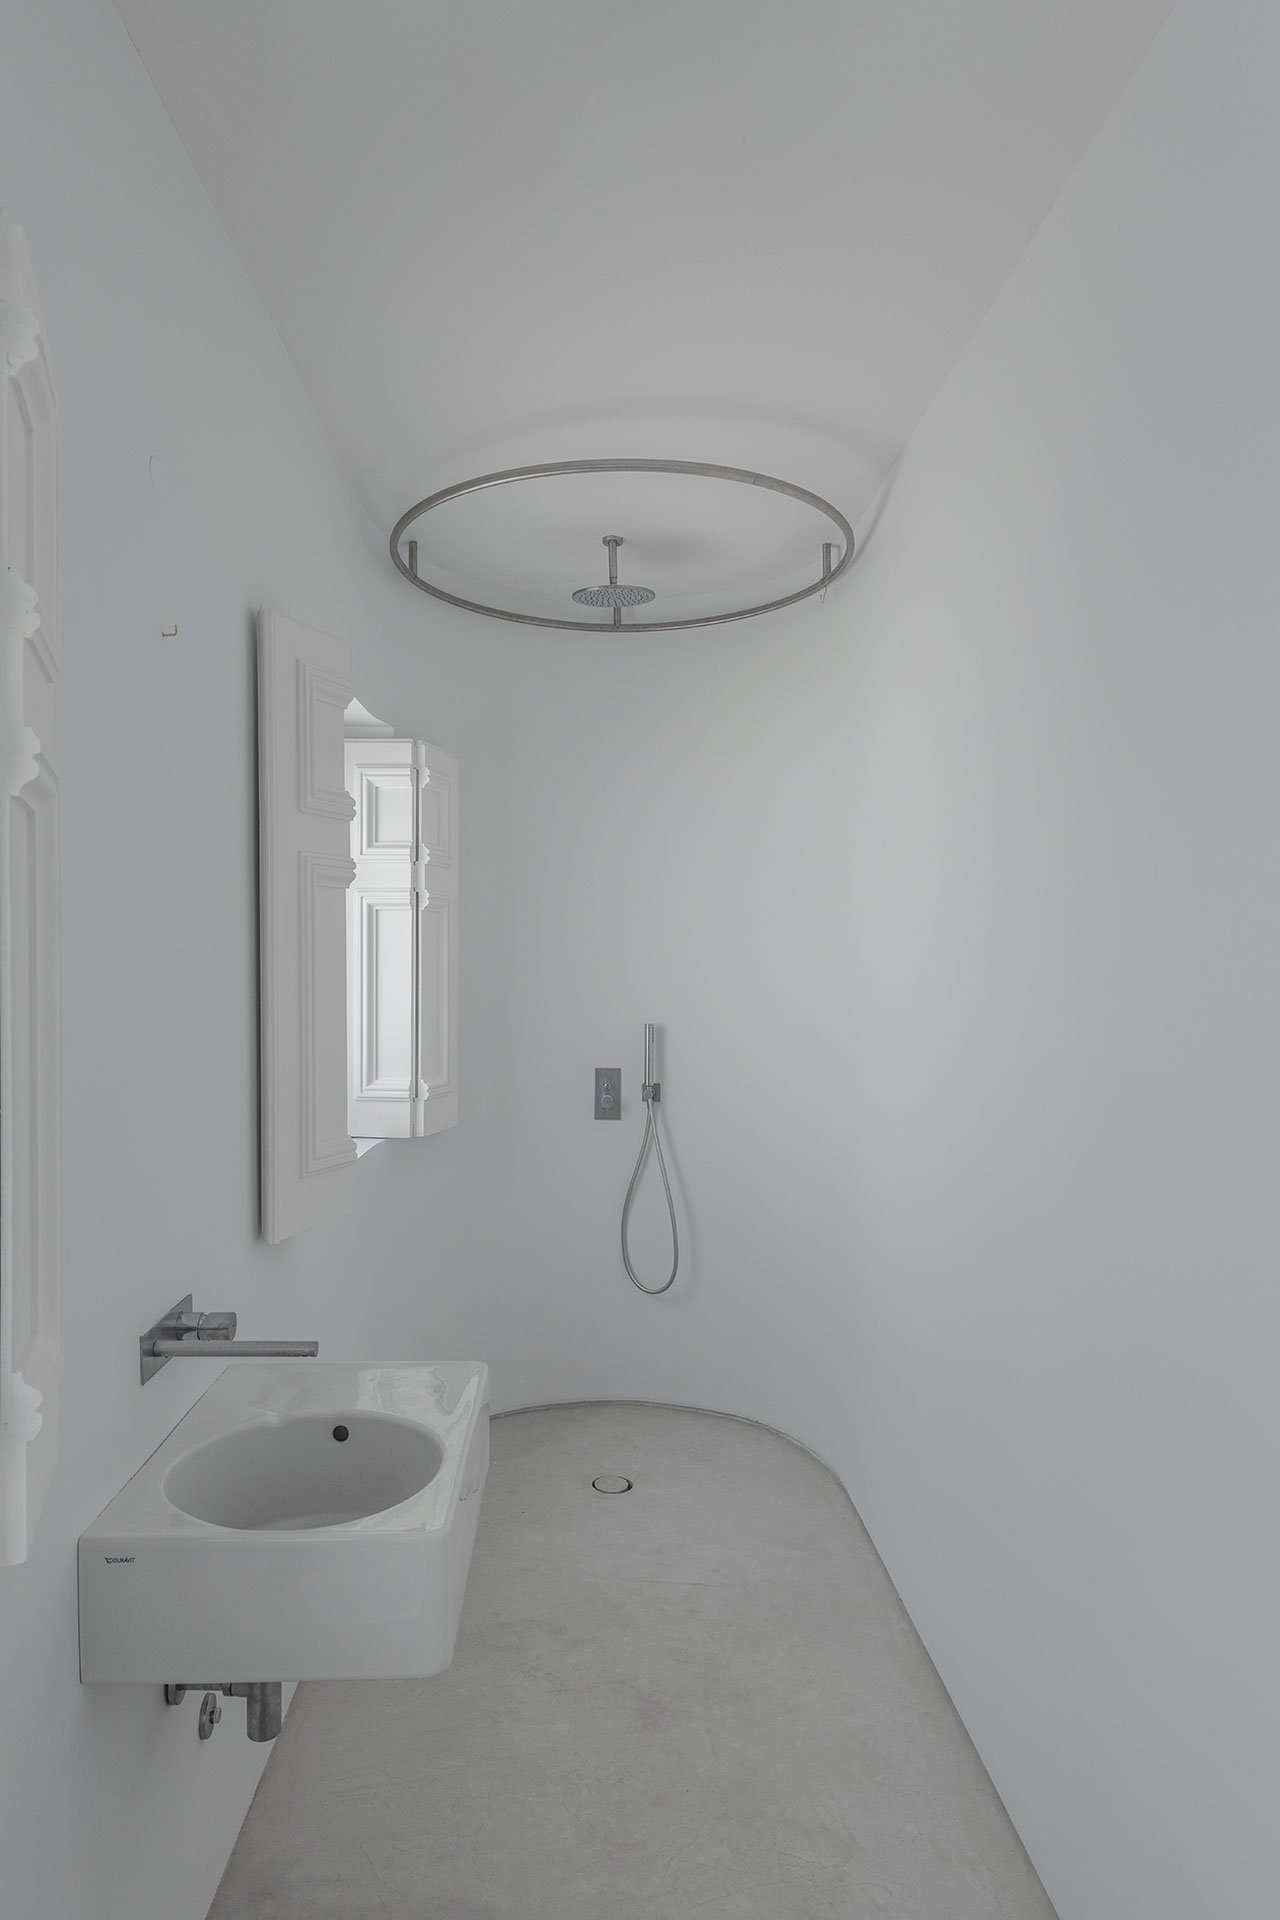 The bathroom is pure white, with a small shower space and a wall mounted sink, the original shutters preserved